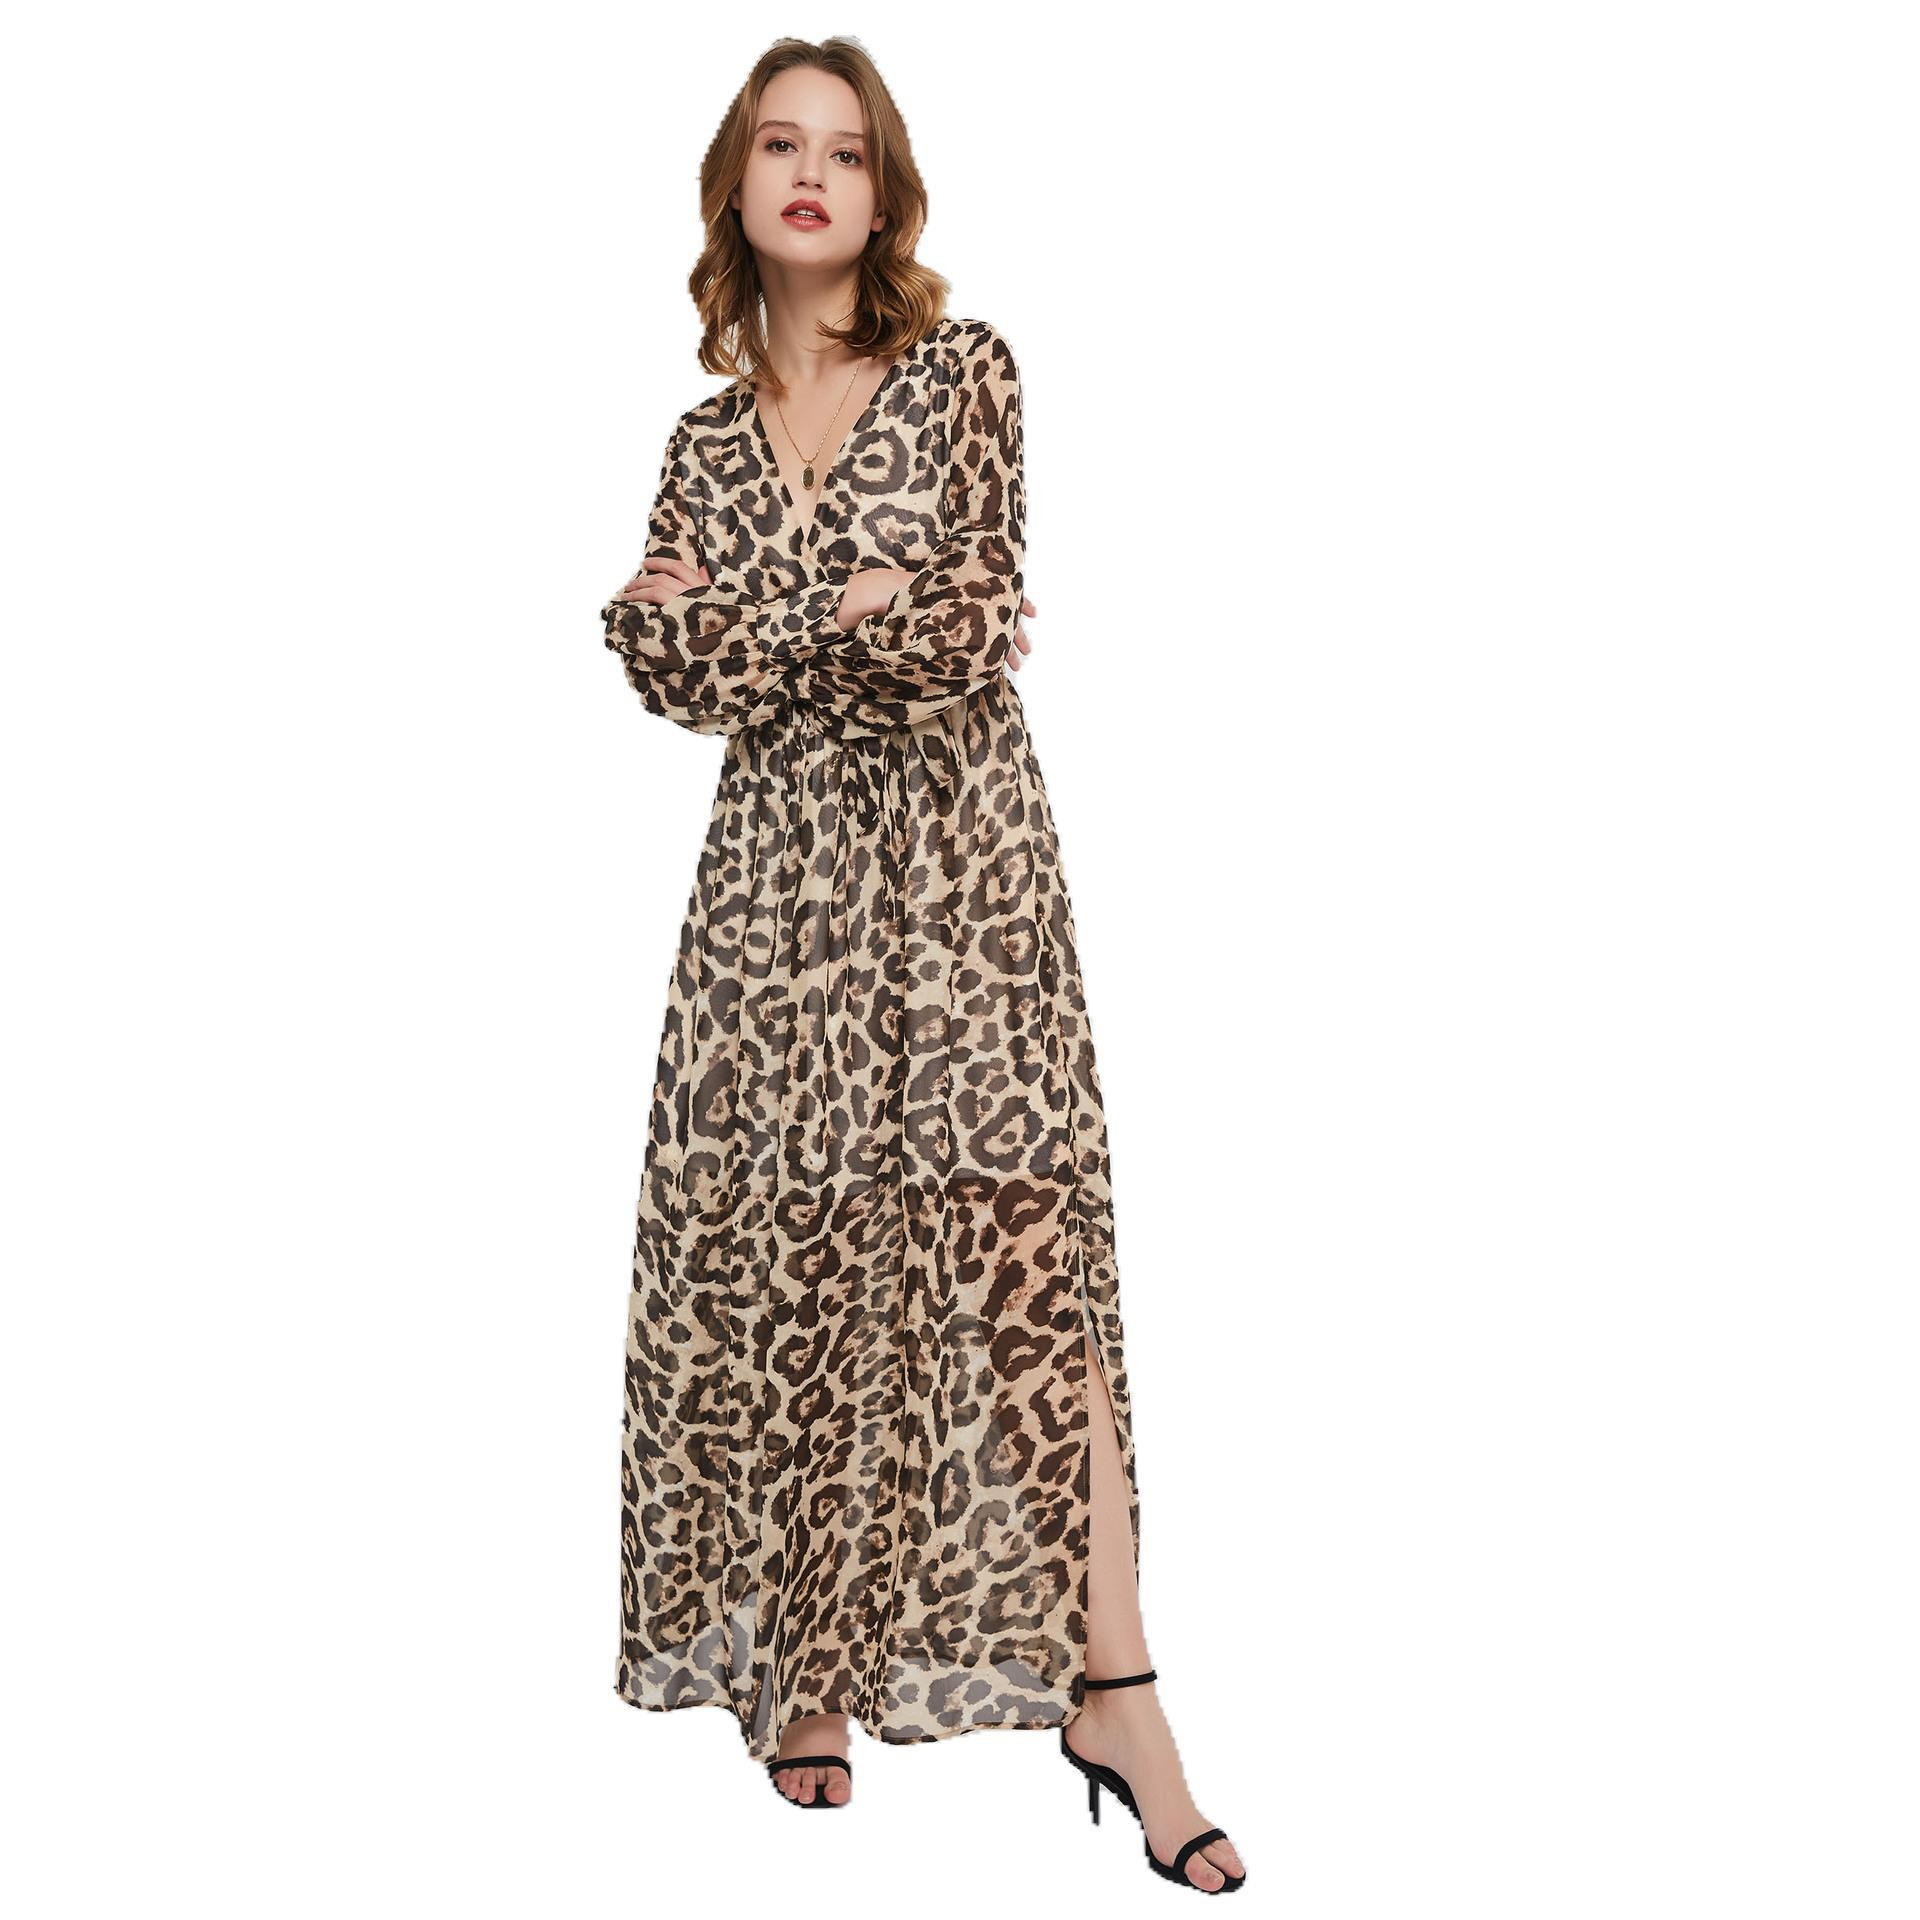 Wholesale <strong>Western</strong> Fashion <strong>Women</strong> Leopard Print Casual <strong>Dress</strong> Autumn <strong>Women's</strong> V-neck Long Sleeve Casual <strong>Dress</strong>